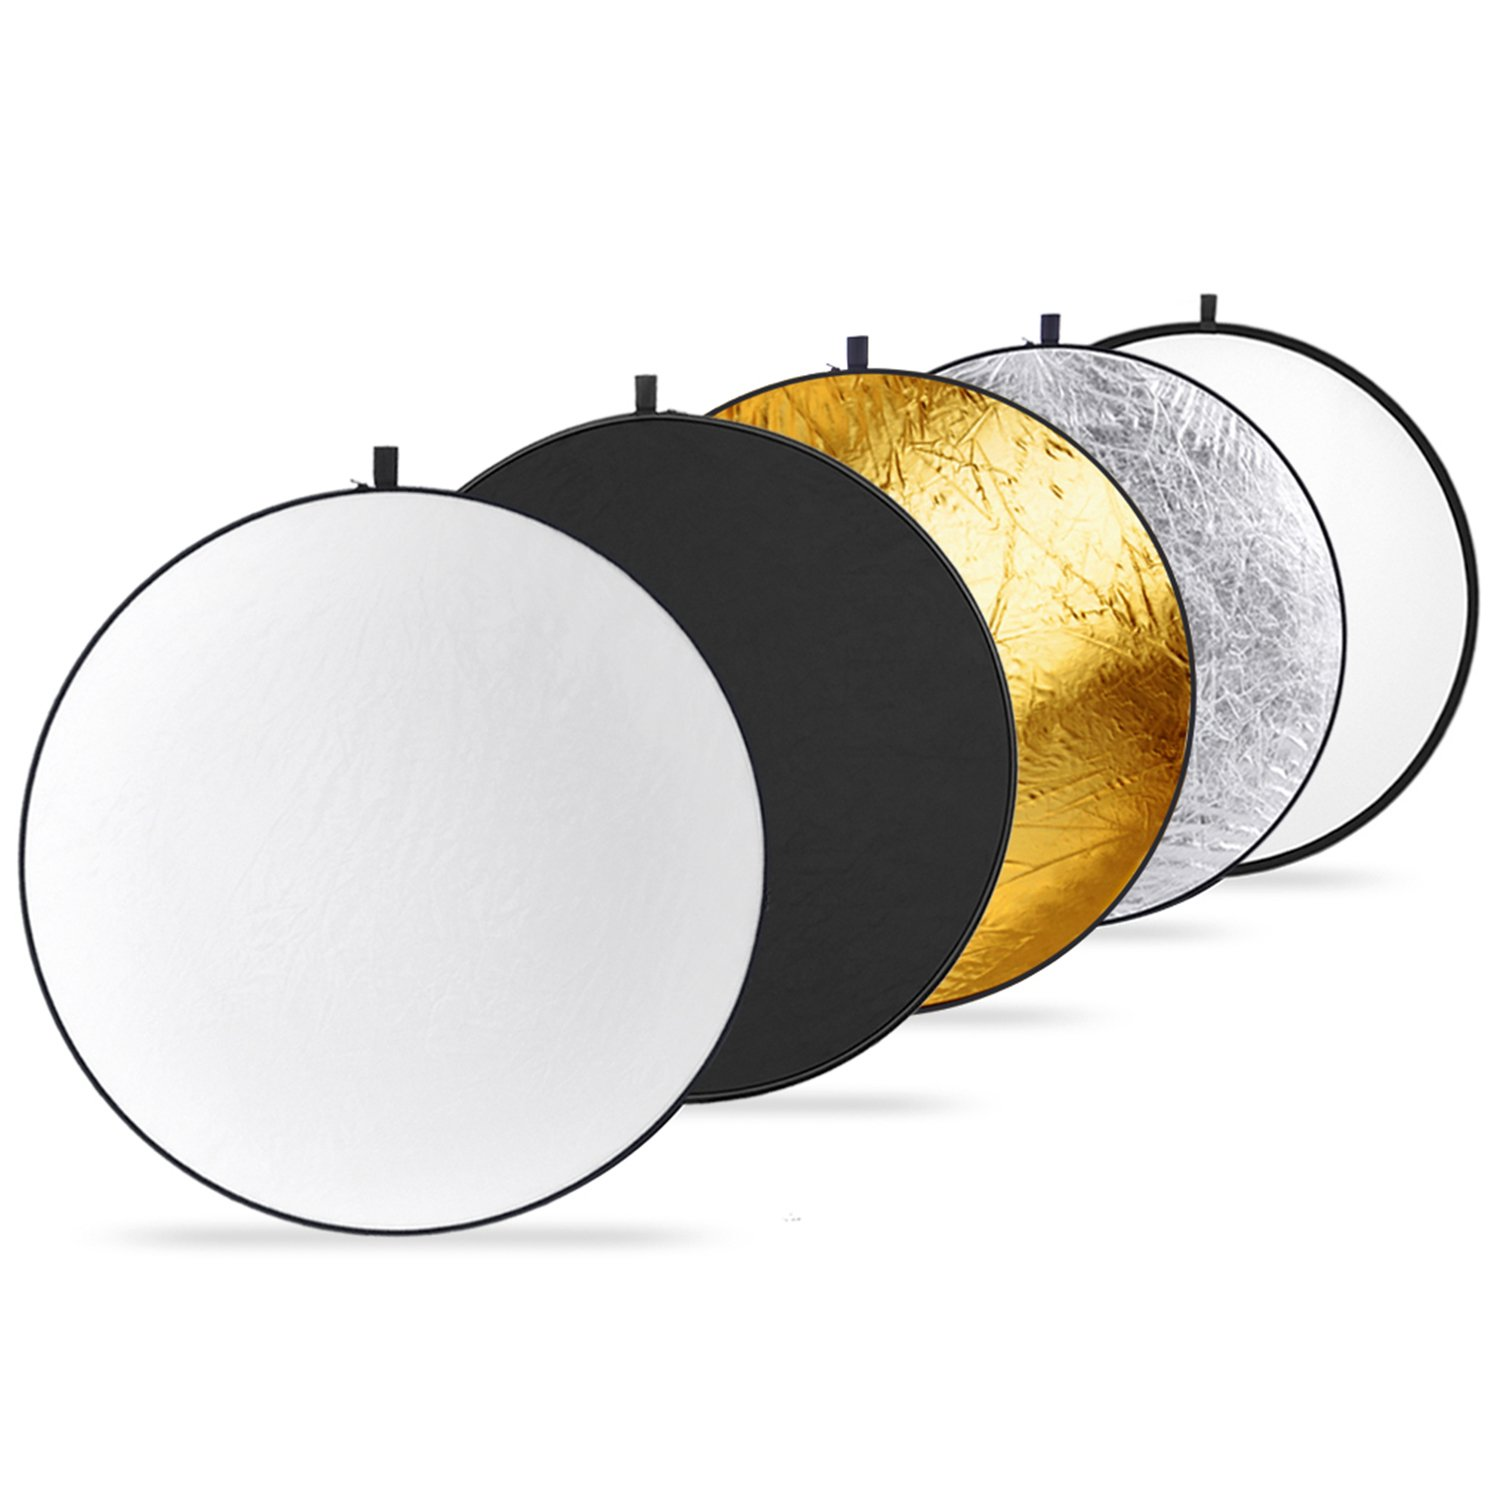 Neewer Round 5-in-1 Collapsible Multi-Disc Light Reflector..